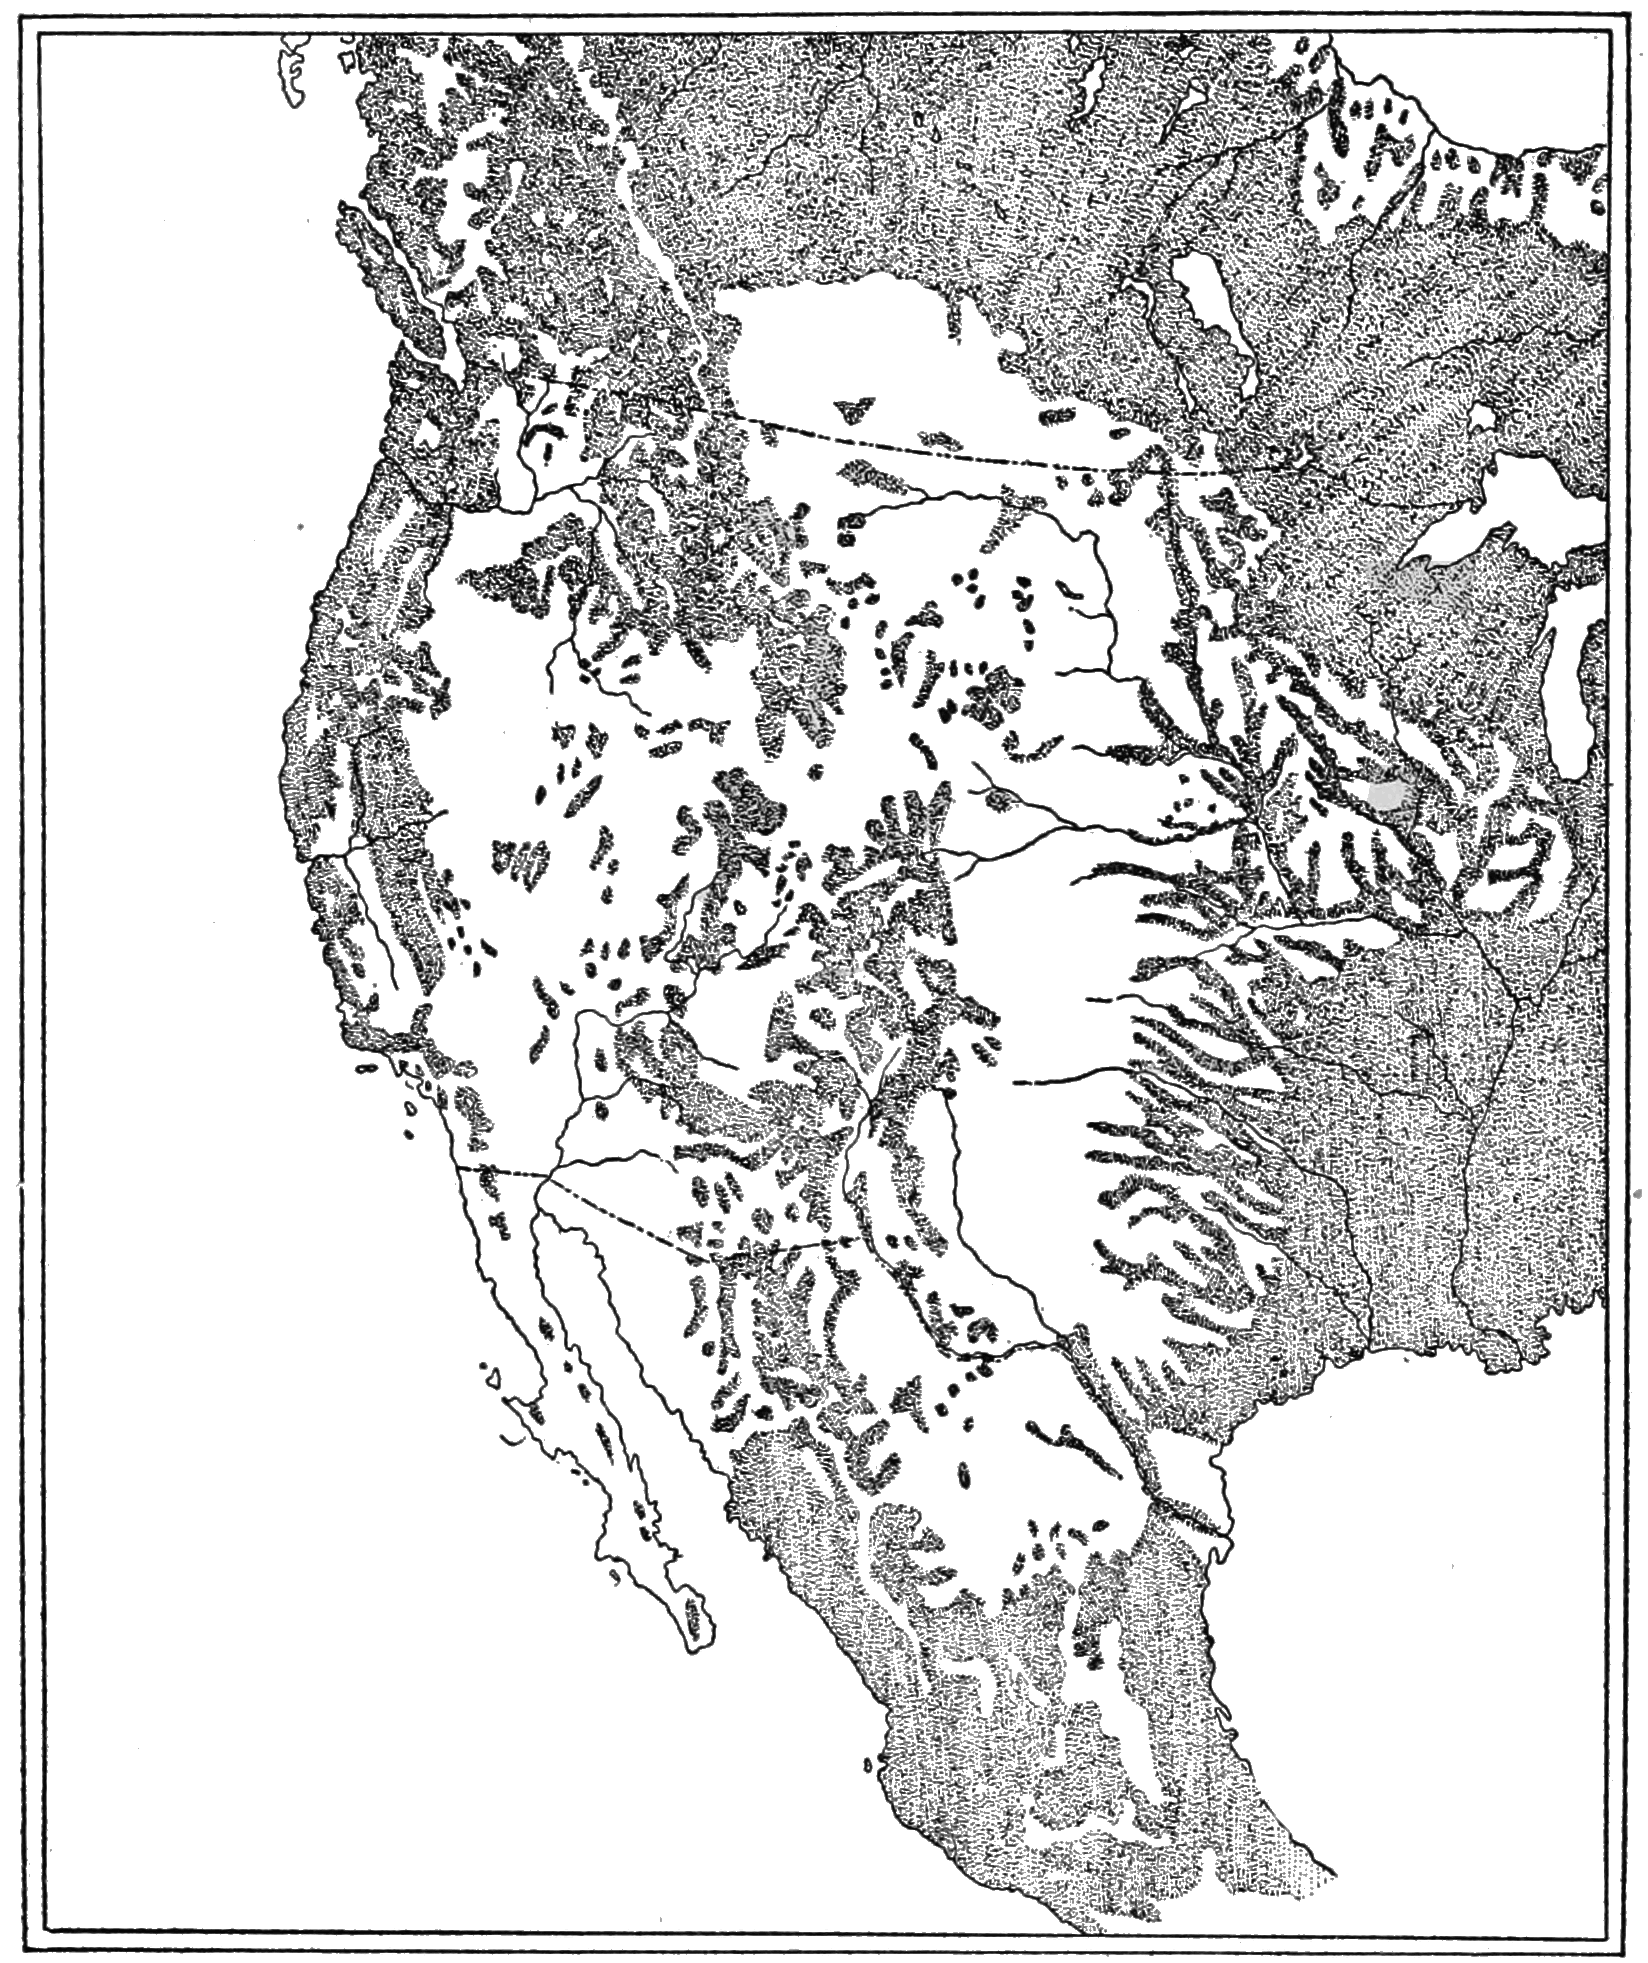 PSM V82 D445 Distribution of forests in western united states.png